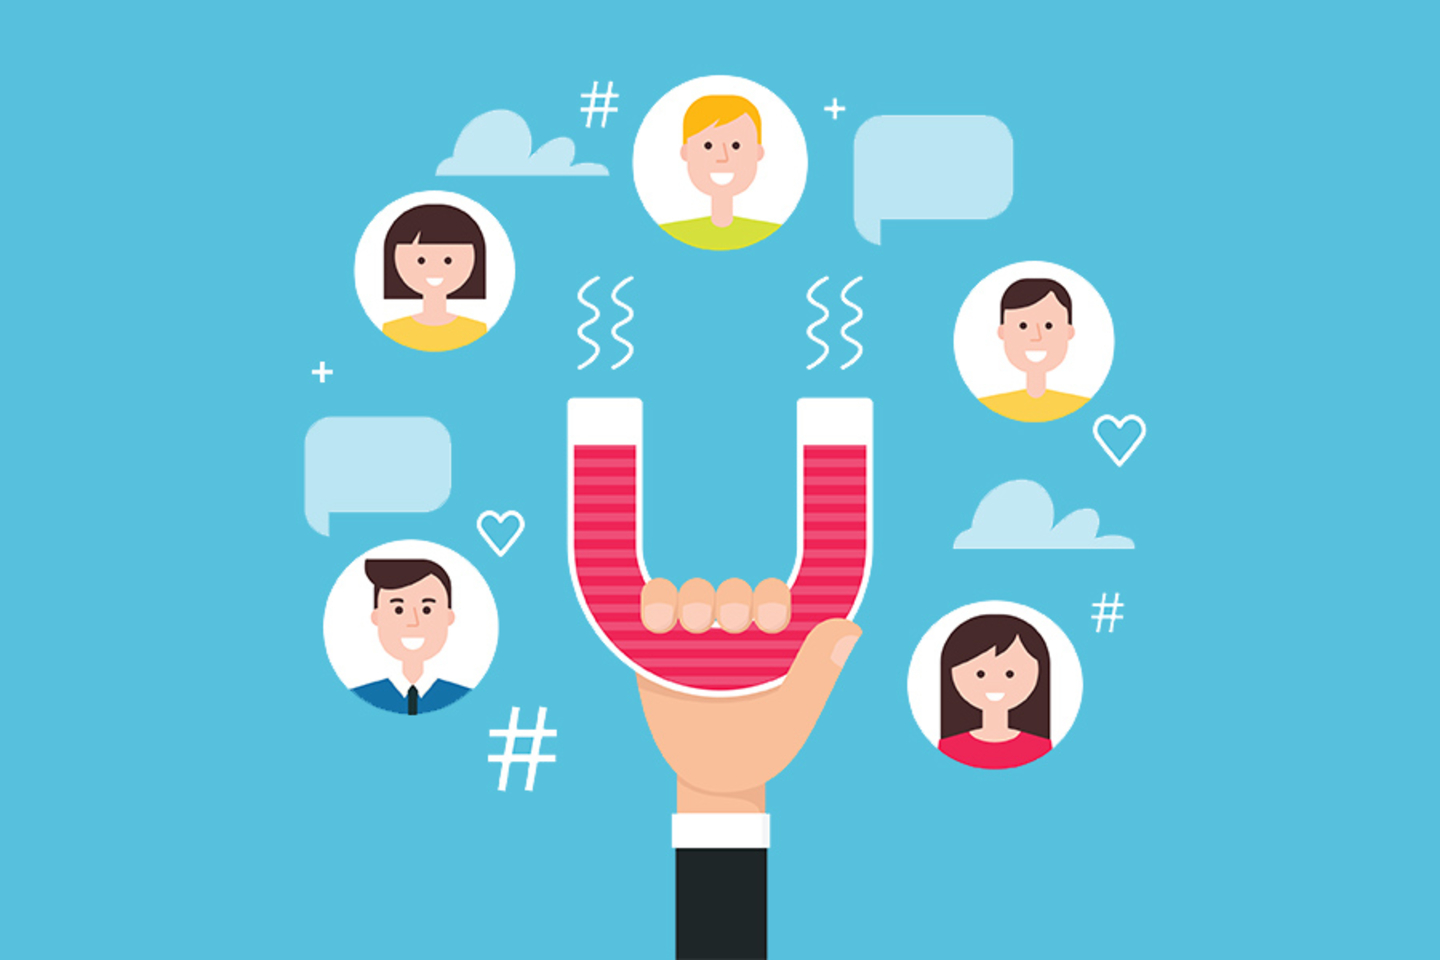 Does customer engagement play a prominent role in the banking sector?